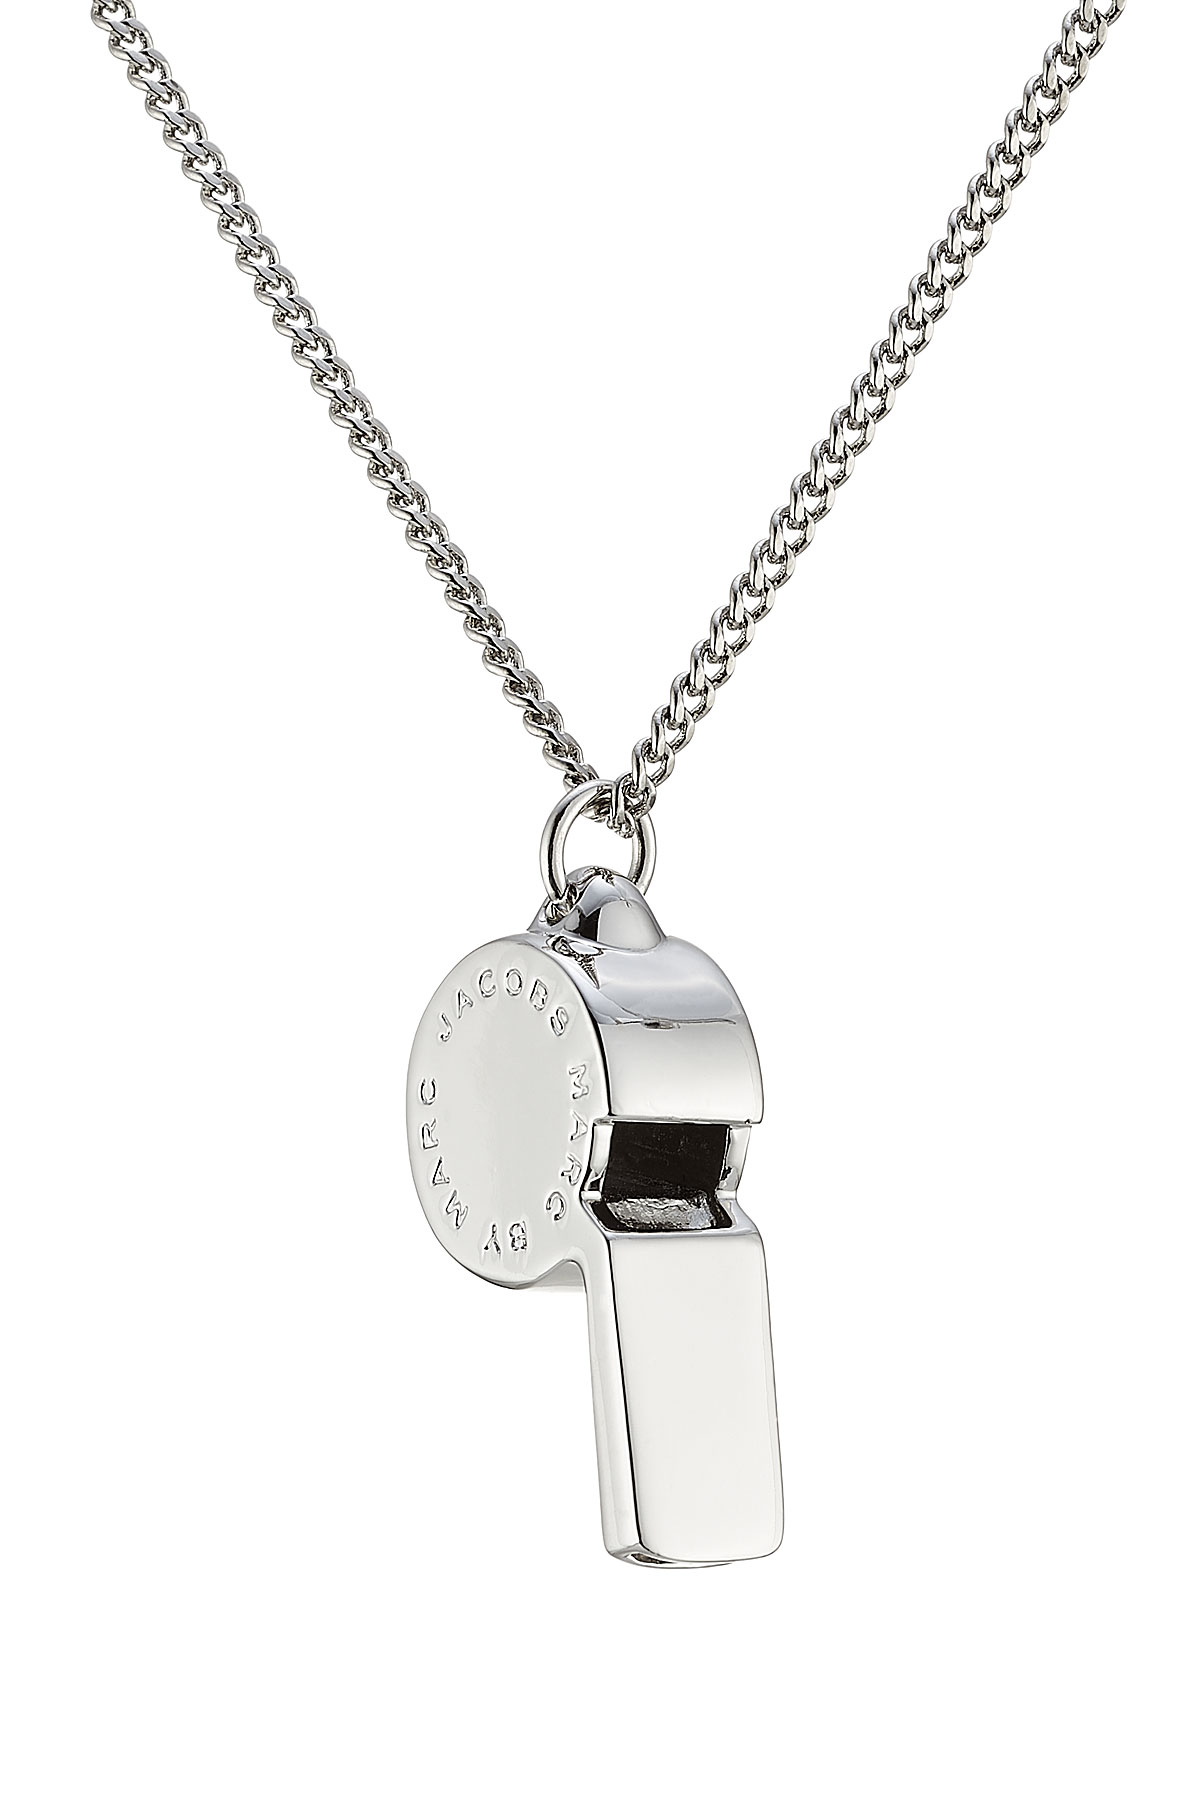 ralph sterling tradesy lauren i silver whistle pendant necklace